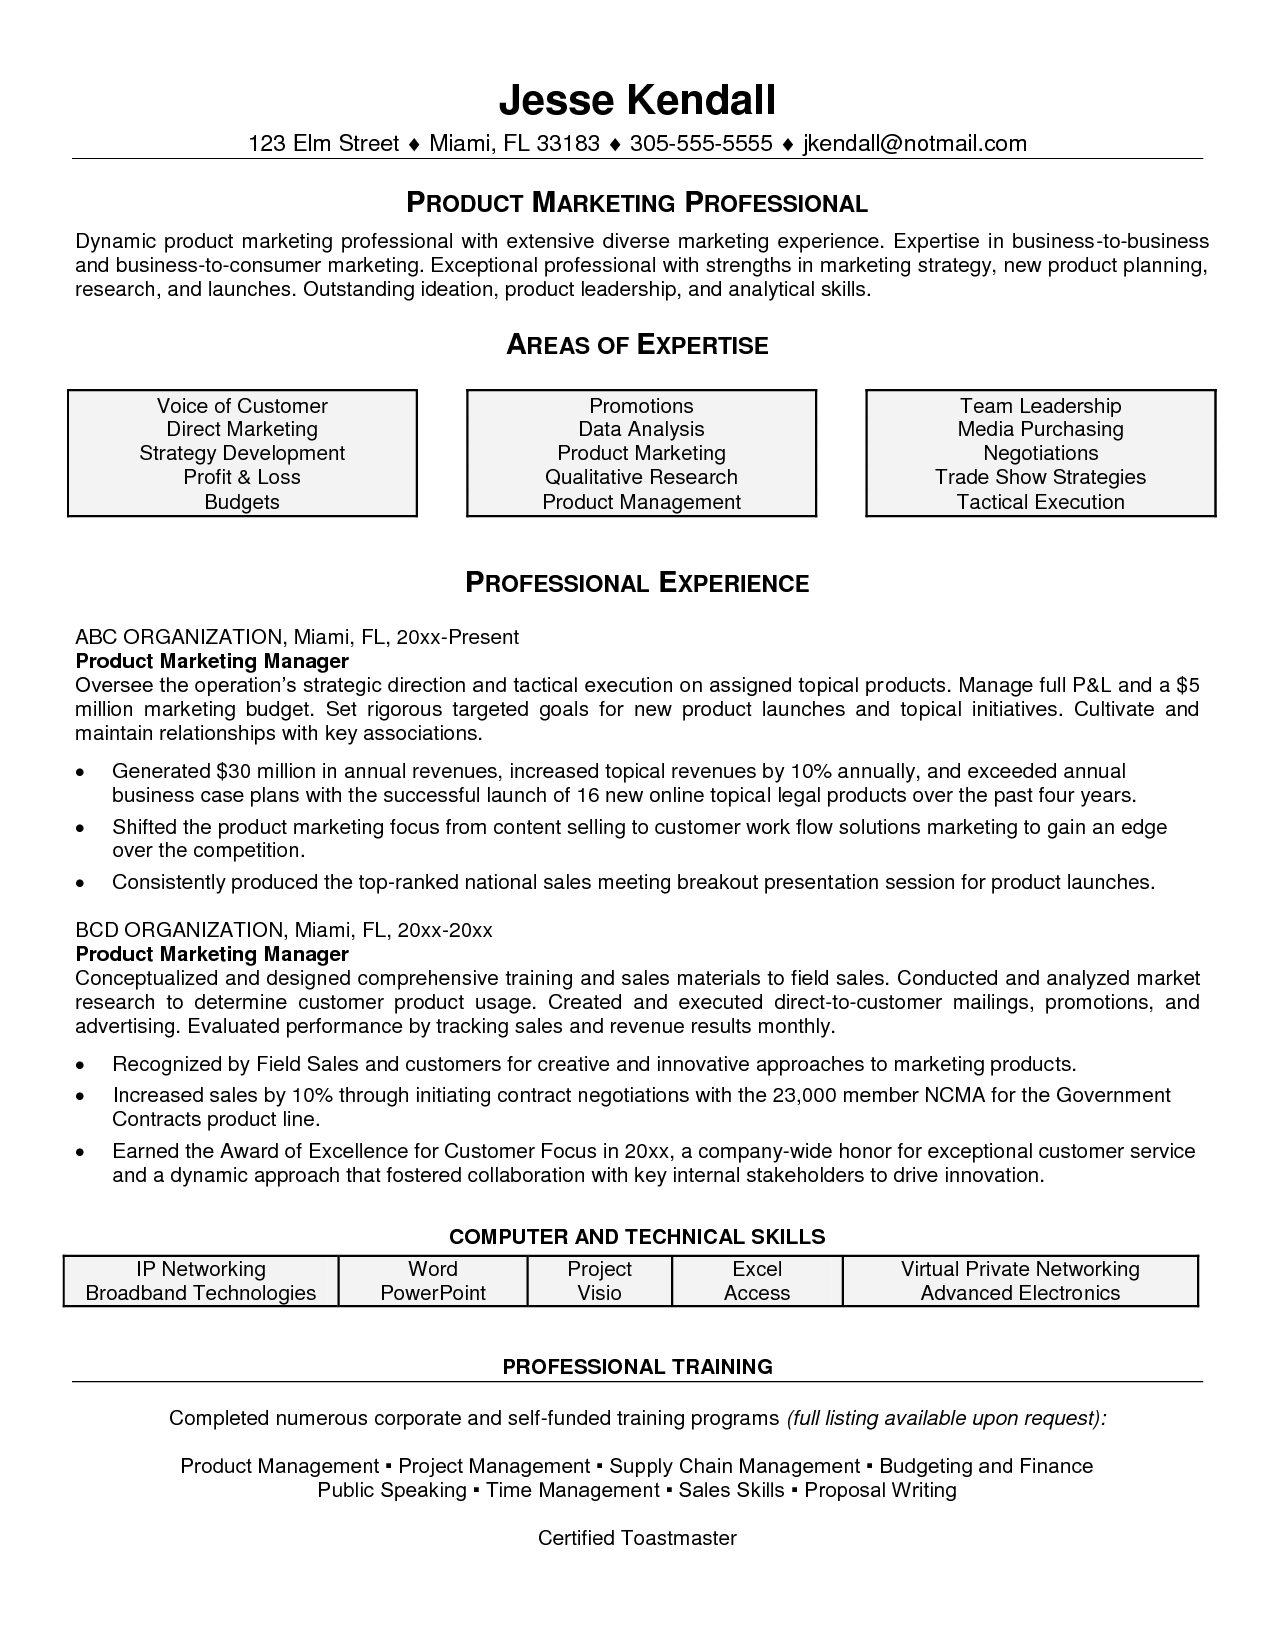 Marketing Specialist Resume This Resume Example For A Marketing Project Manager Is Used To